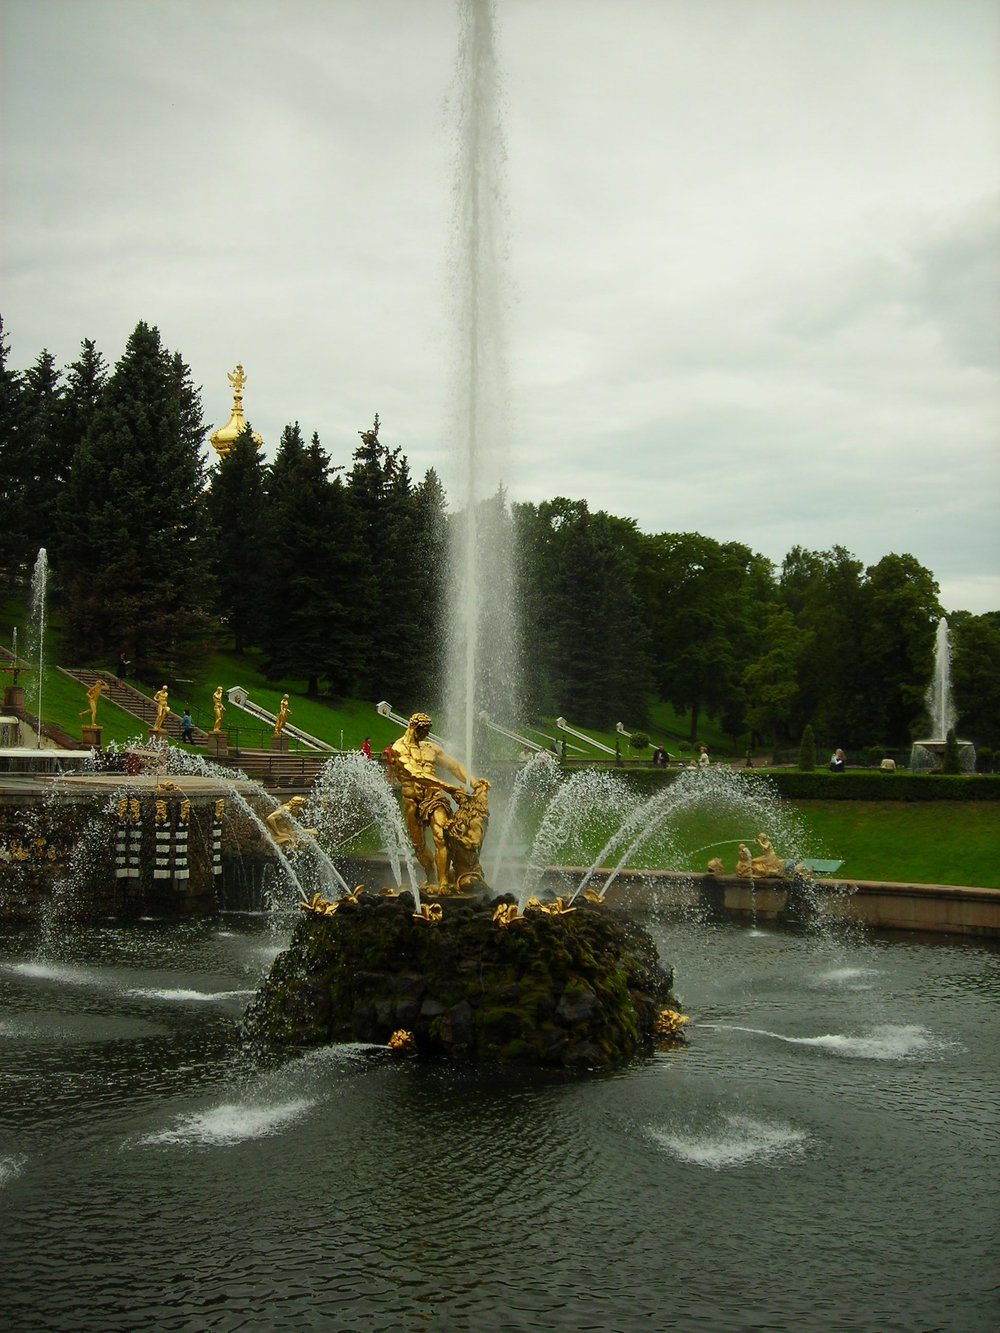 Sampson Fountain, St. Petersburg, Russia